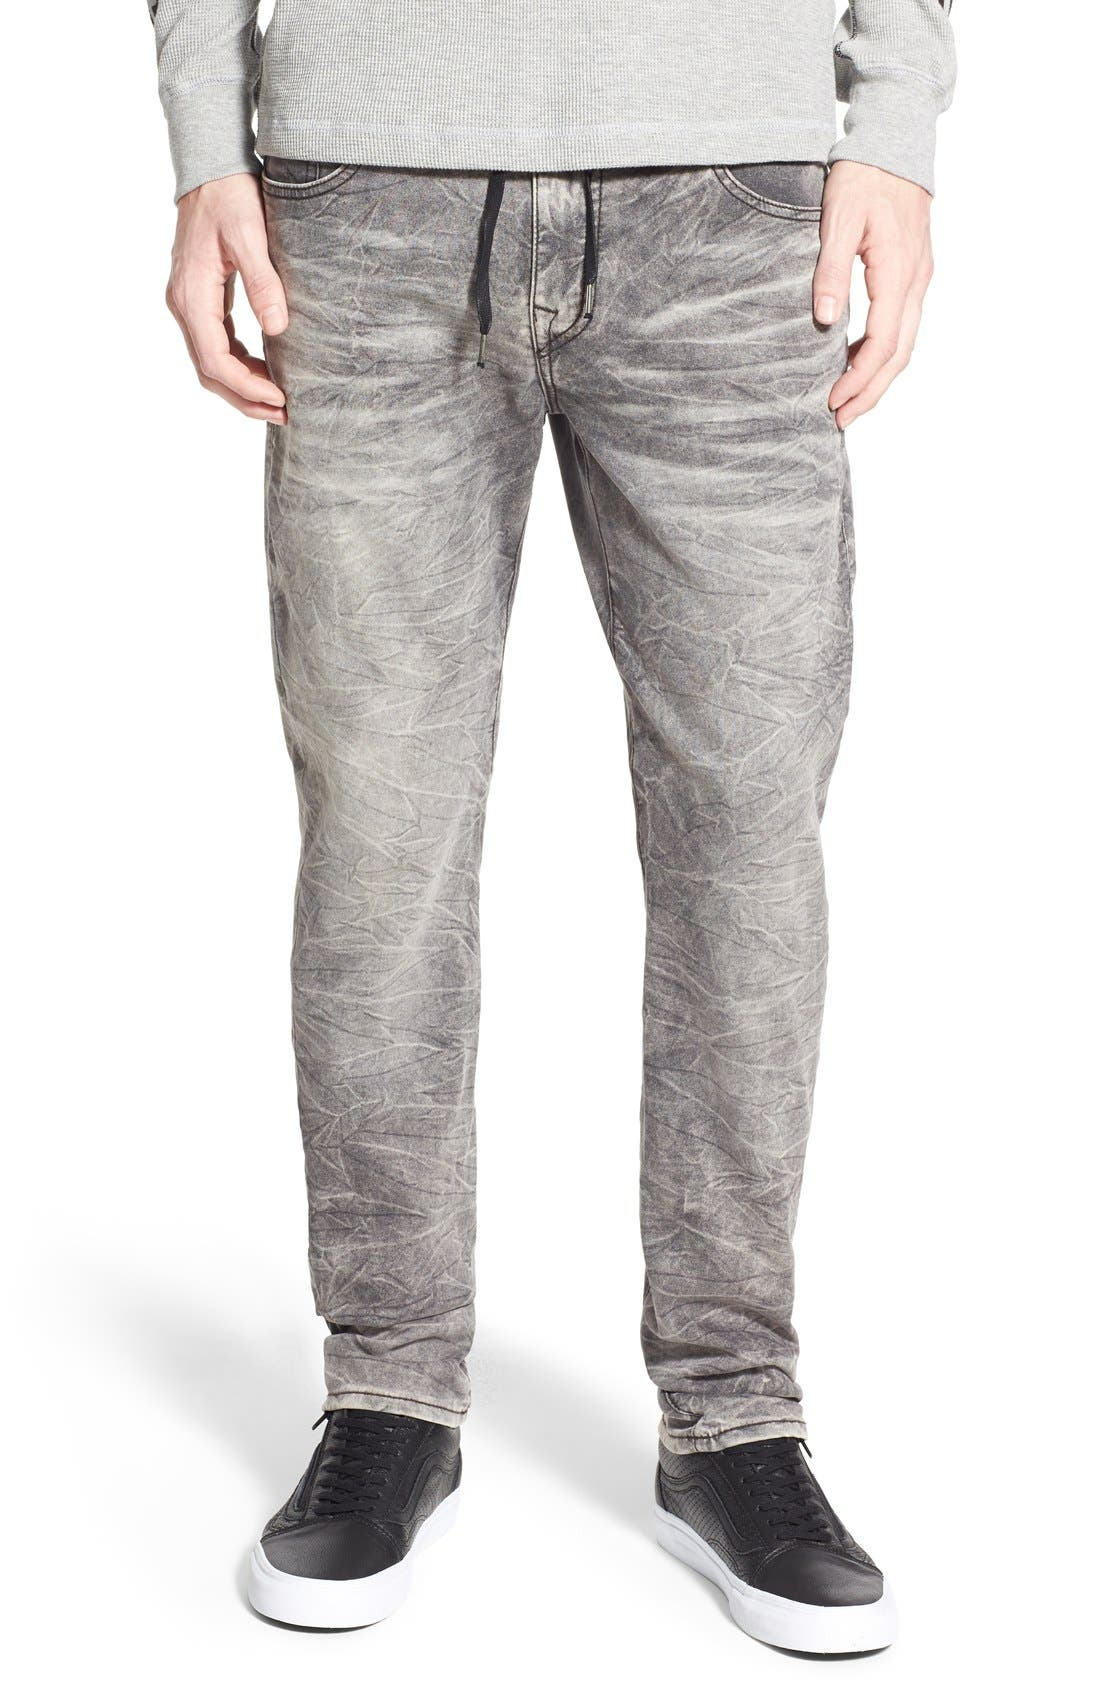 'Dean' Tapered Fit Denim Active Jogger Pants,                             Main thumbnail 1, color,